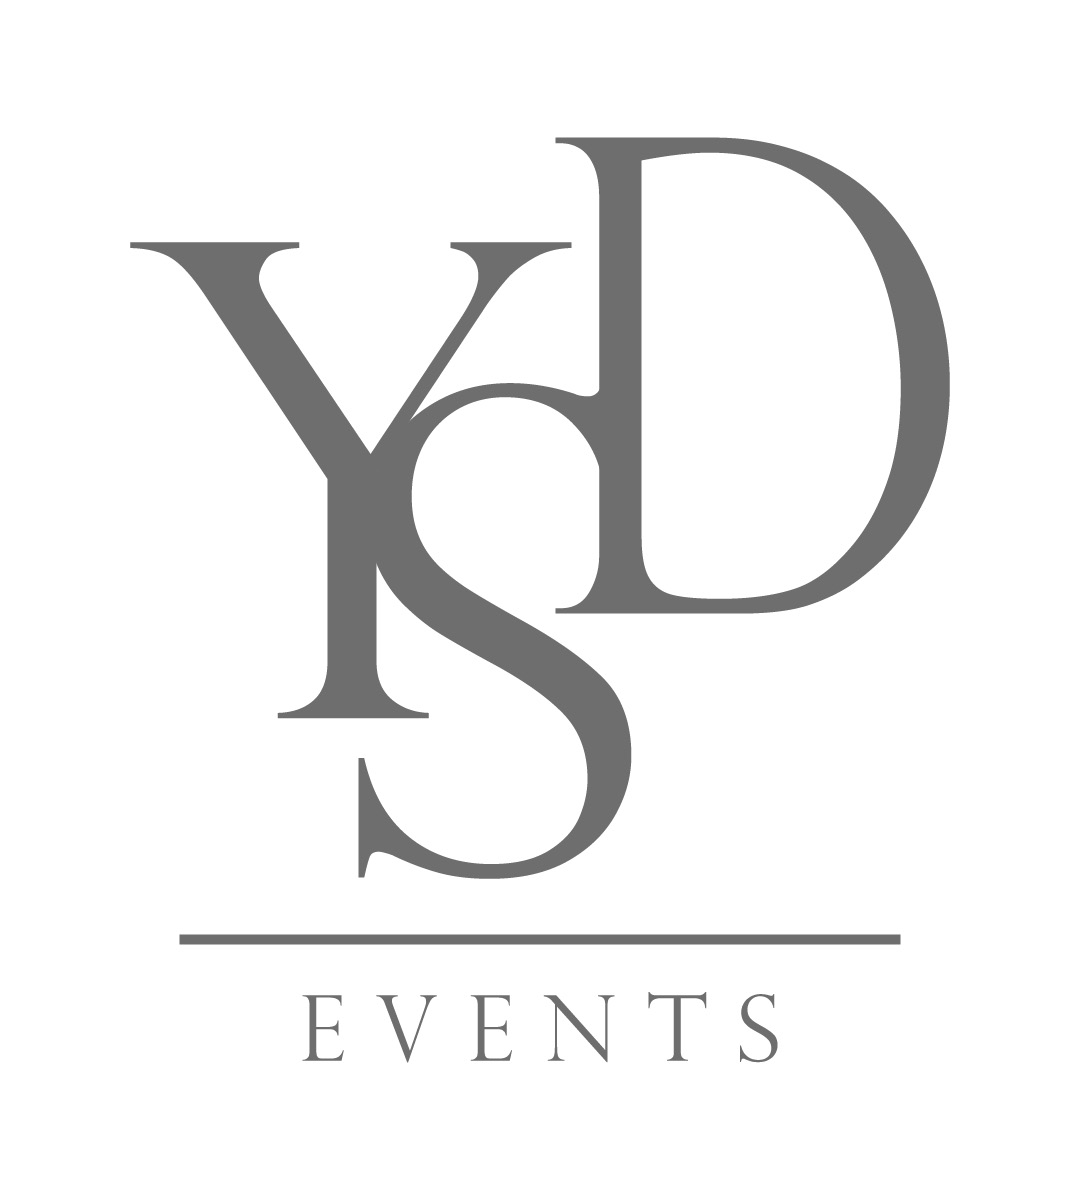 YSD Events - YSD Events